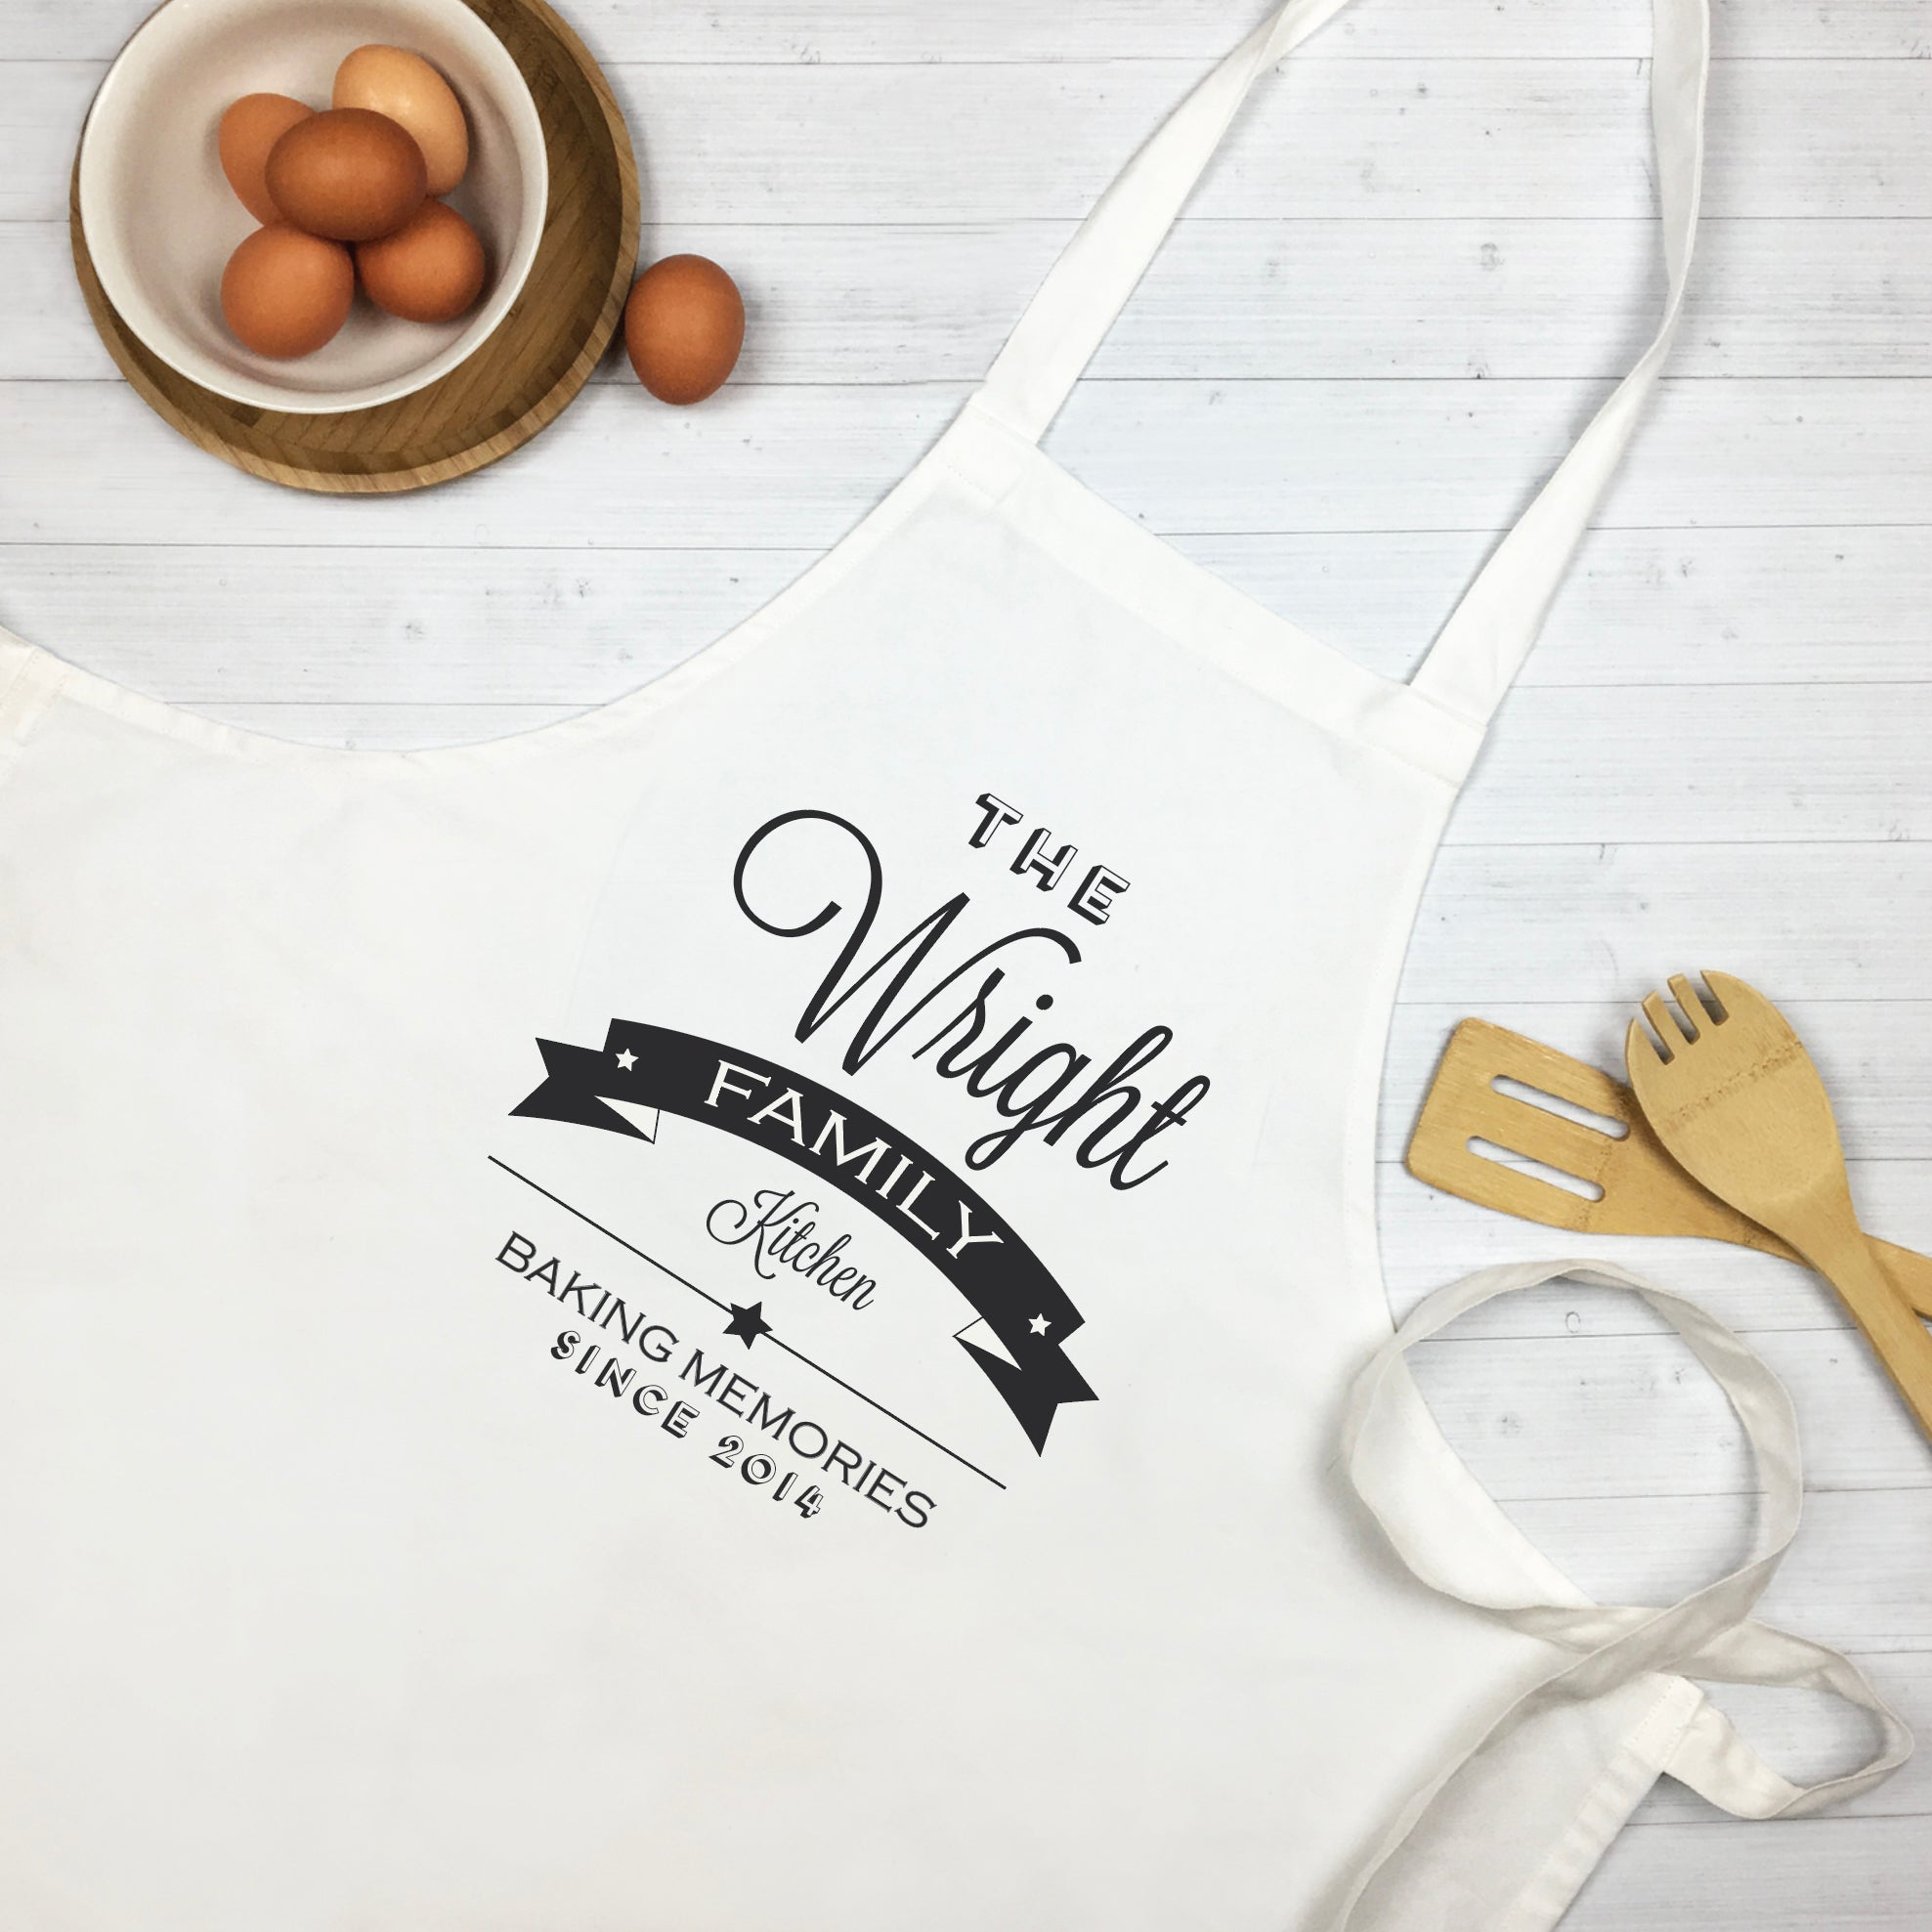 Baking Memories Apron